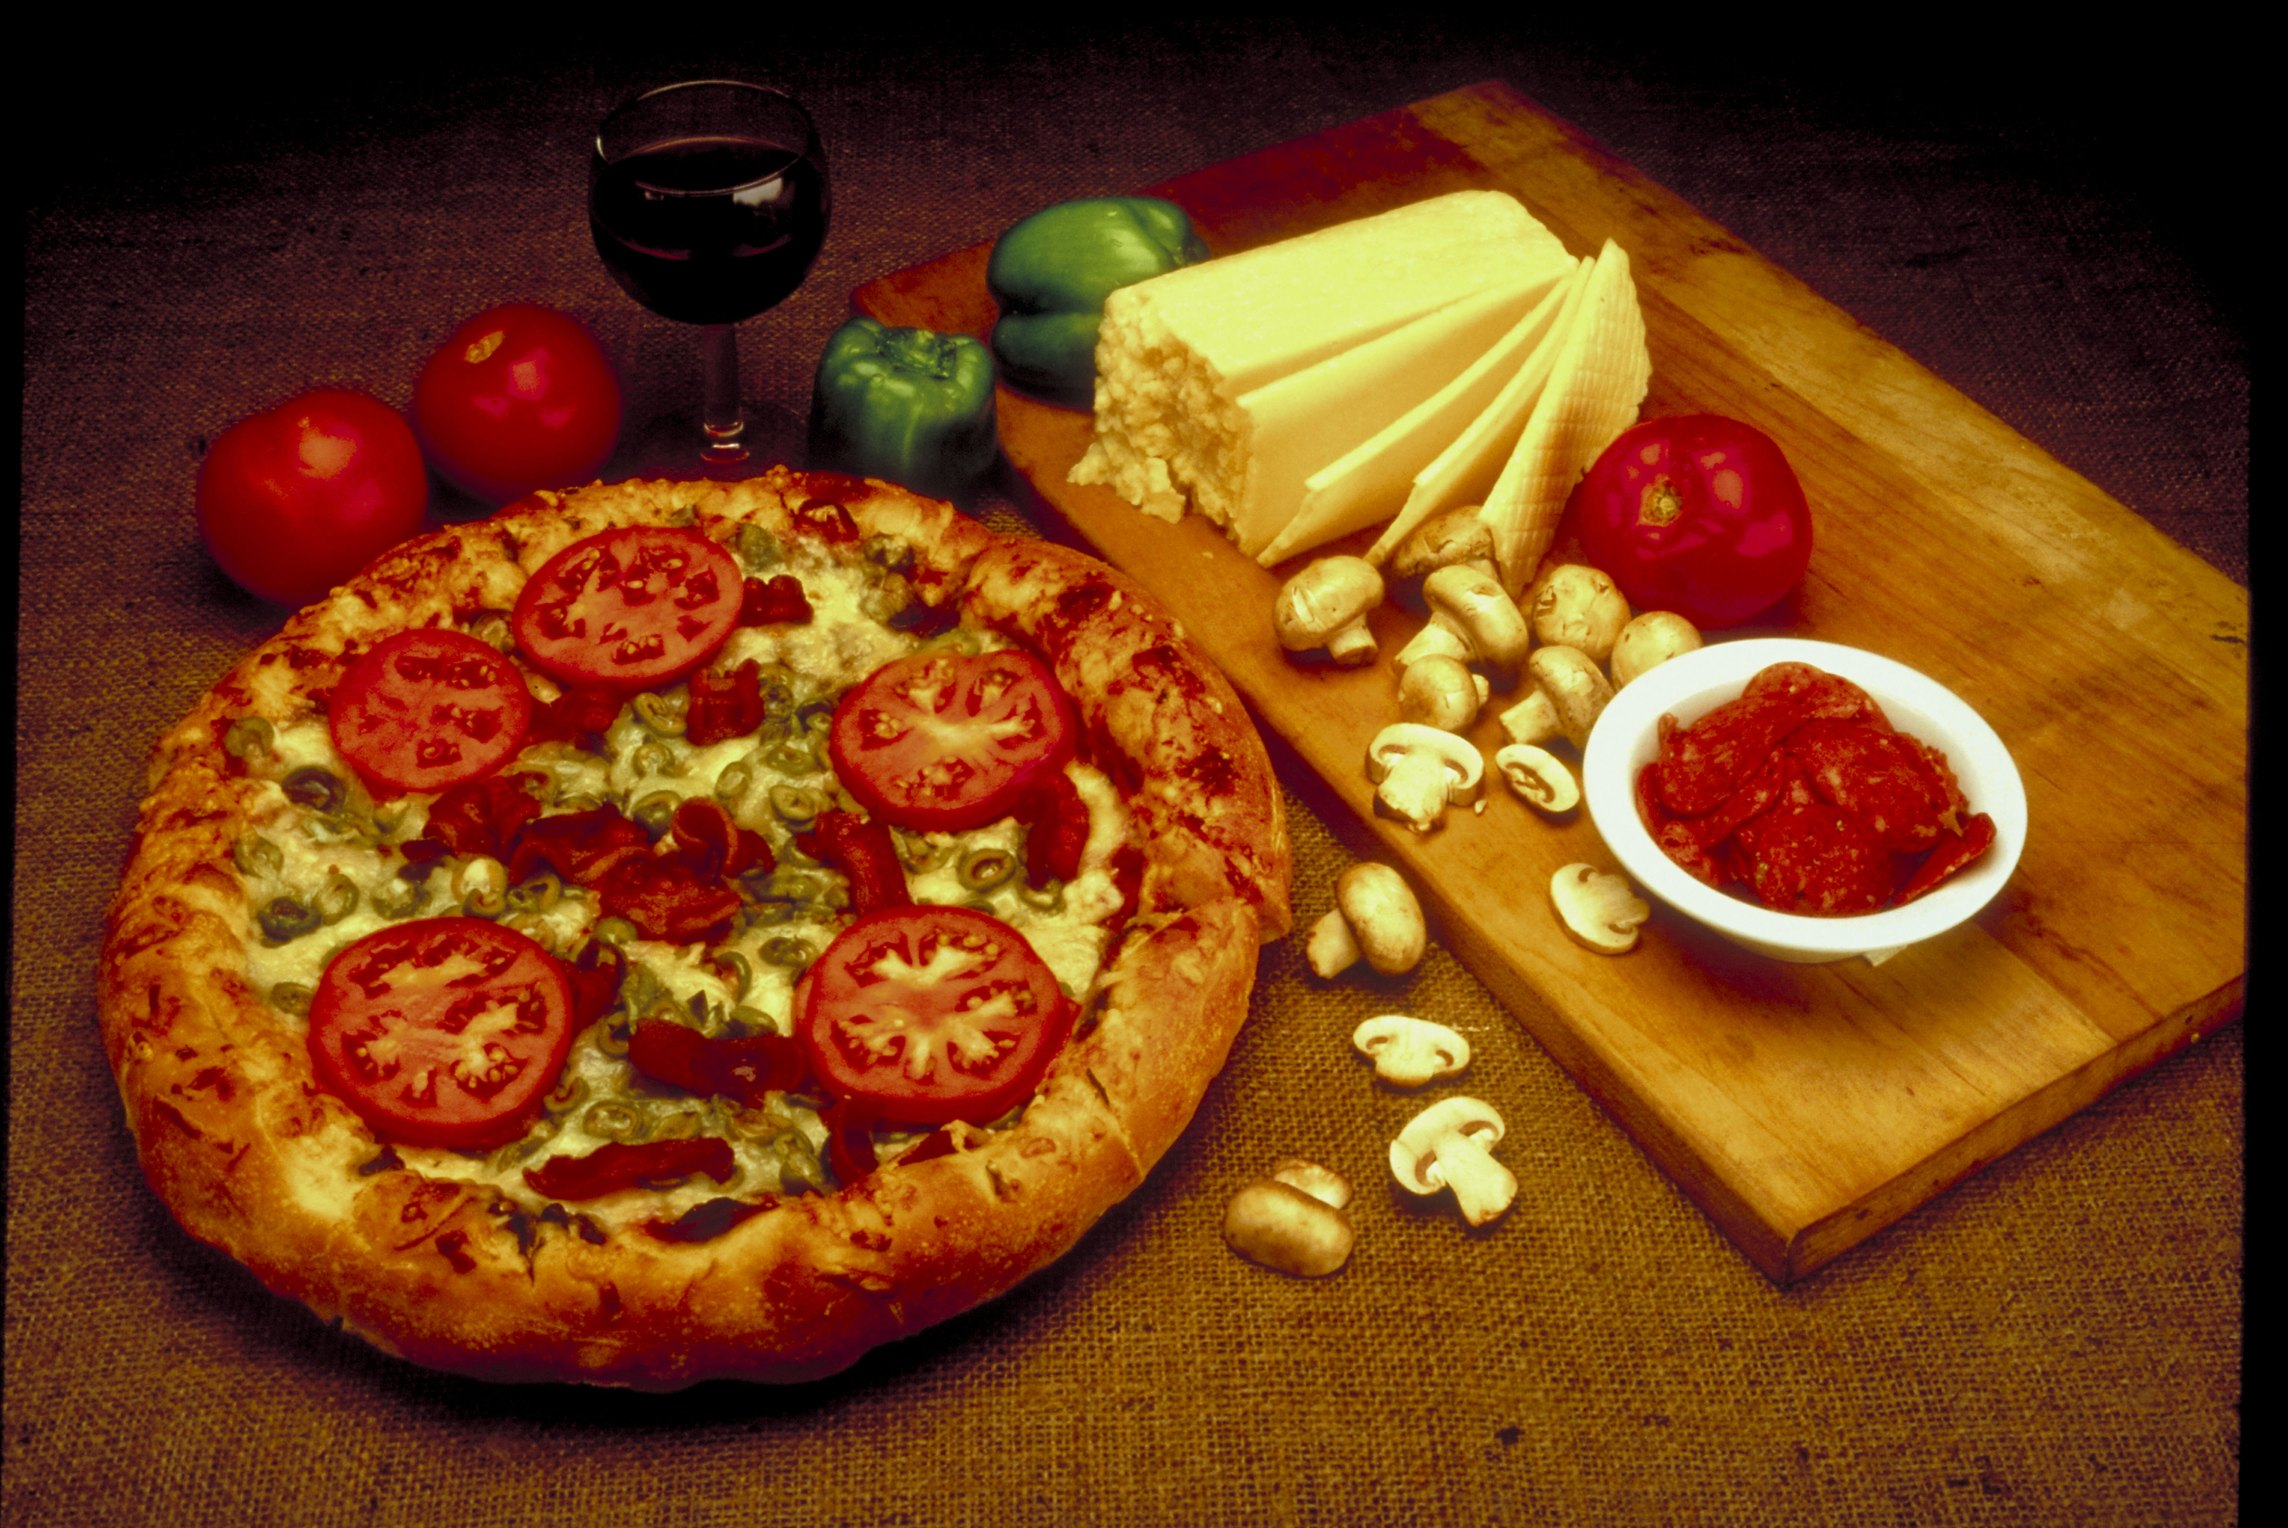 How To Make A Yeast Pizza